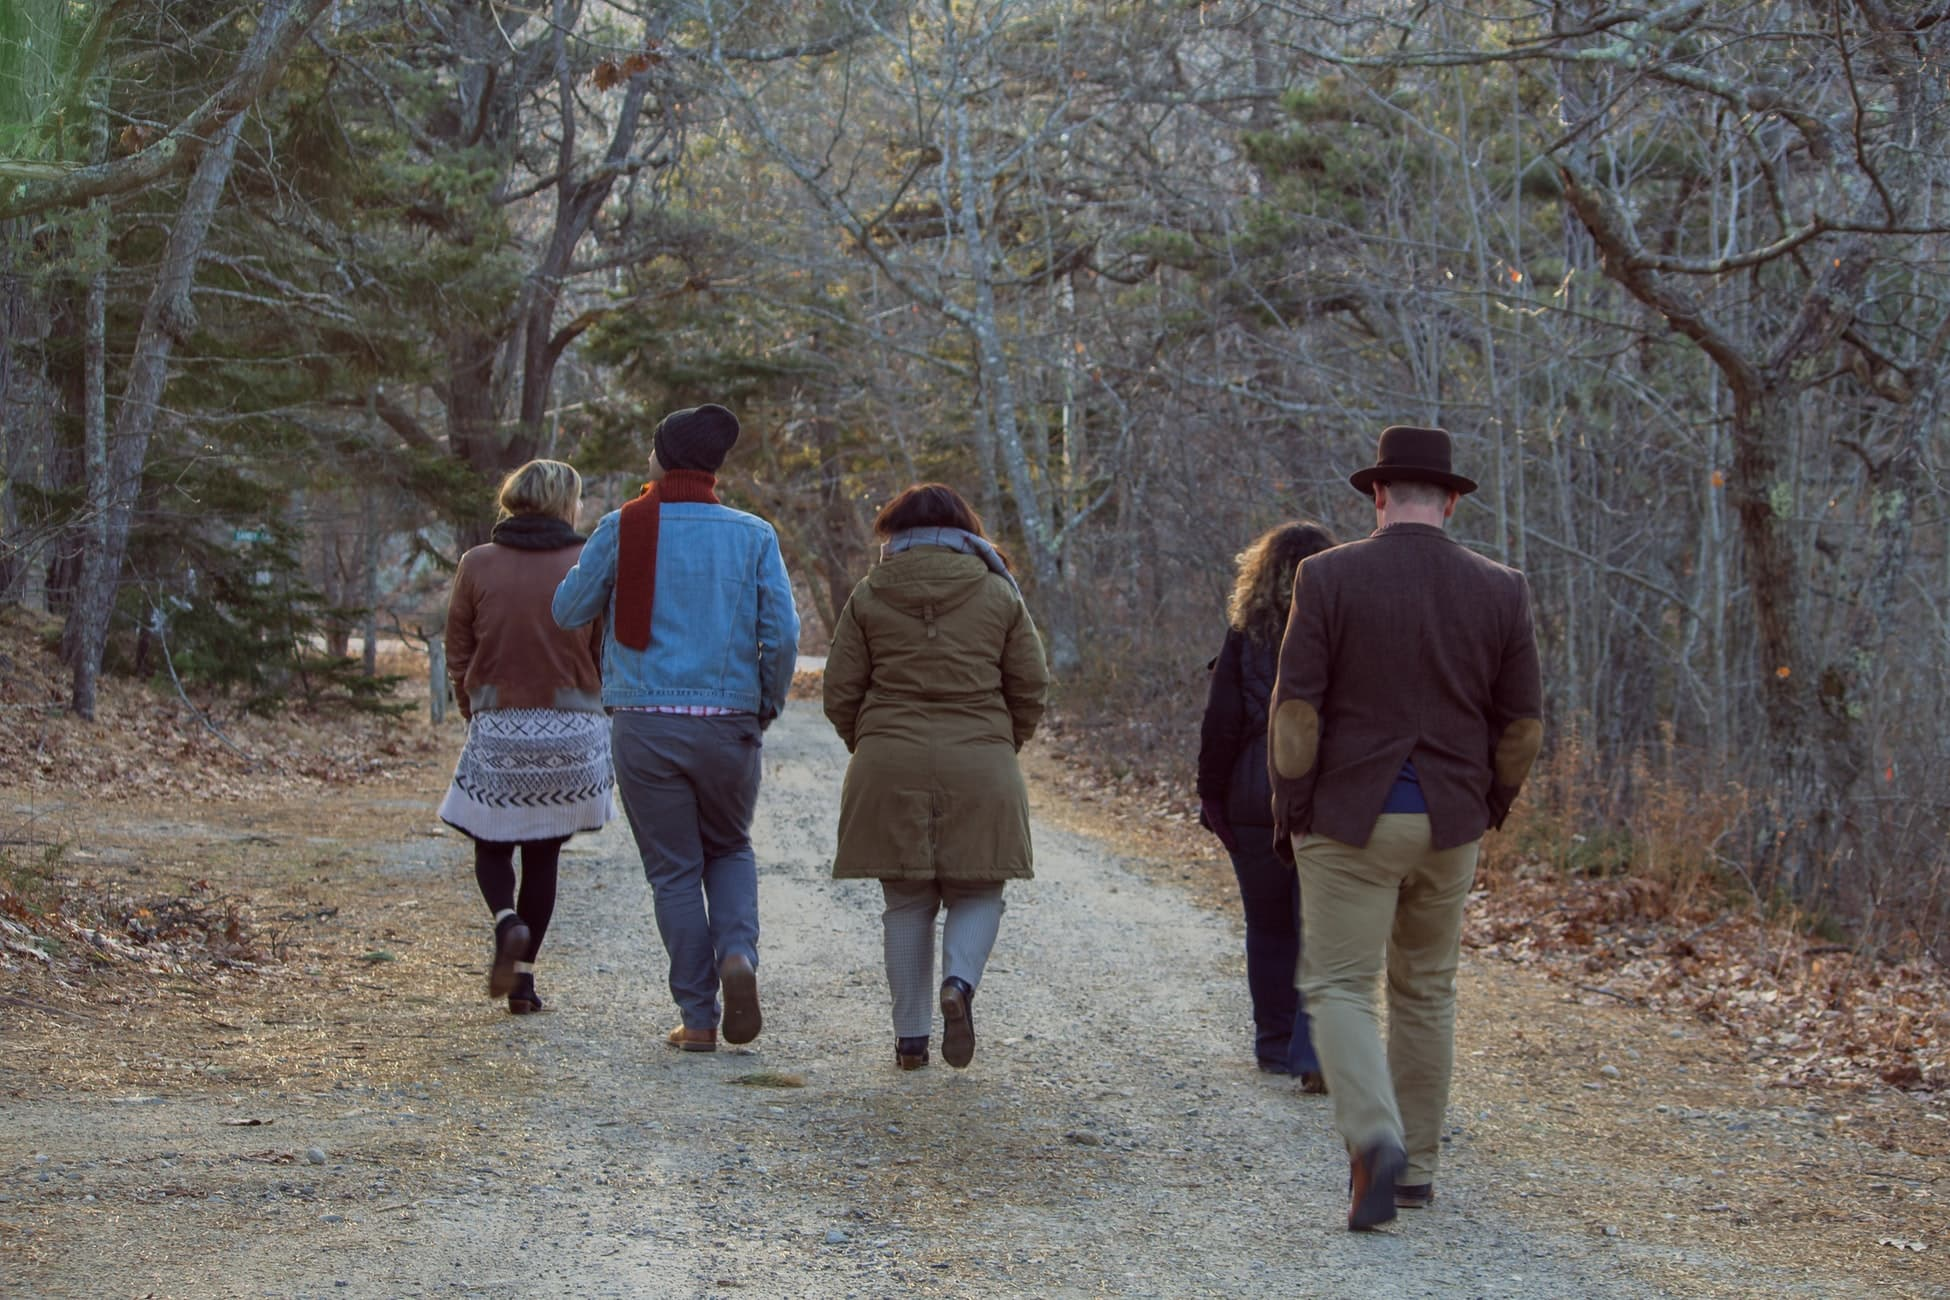 group walking through woods